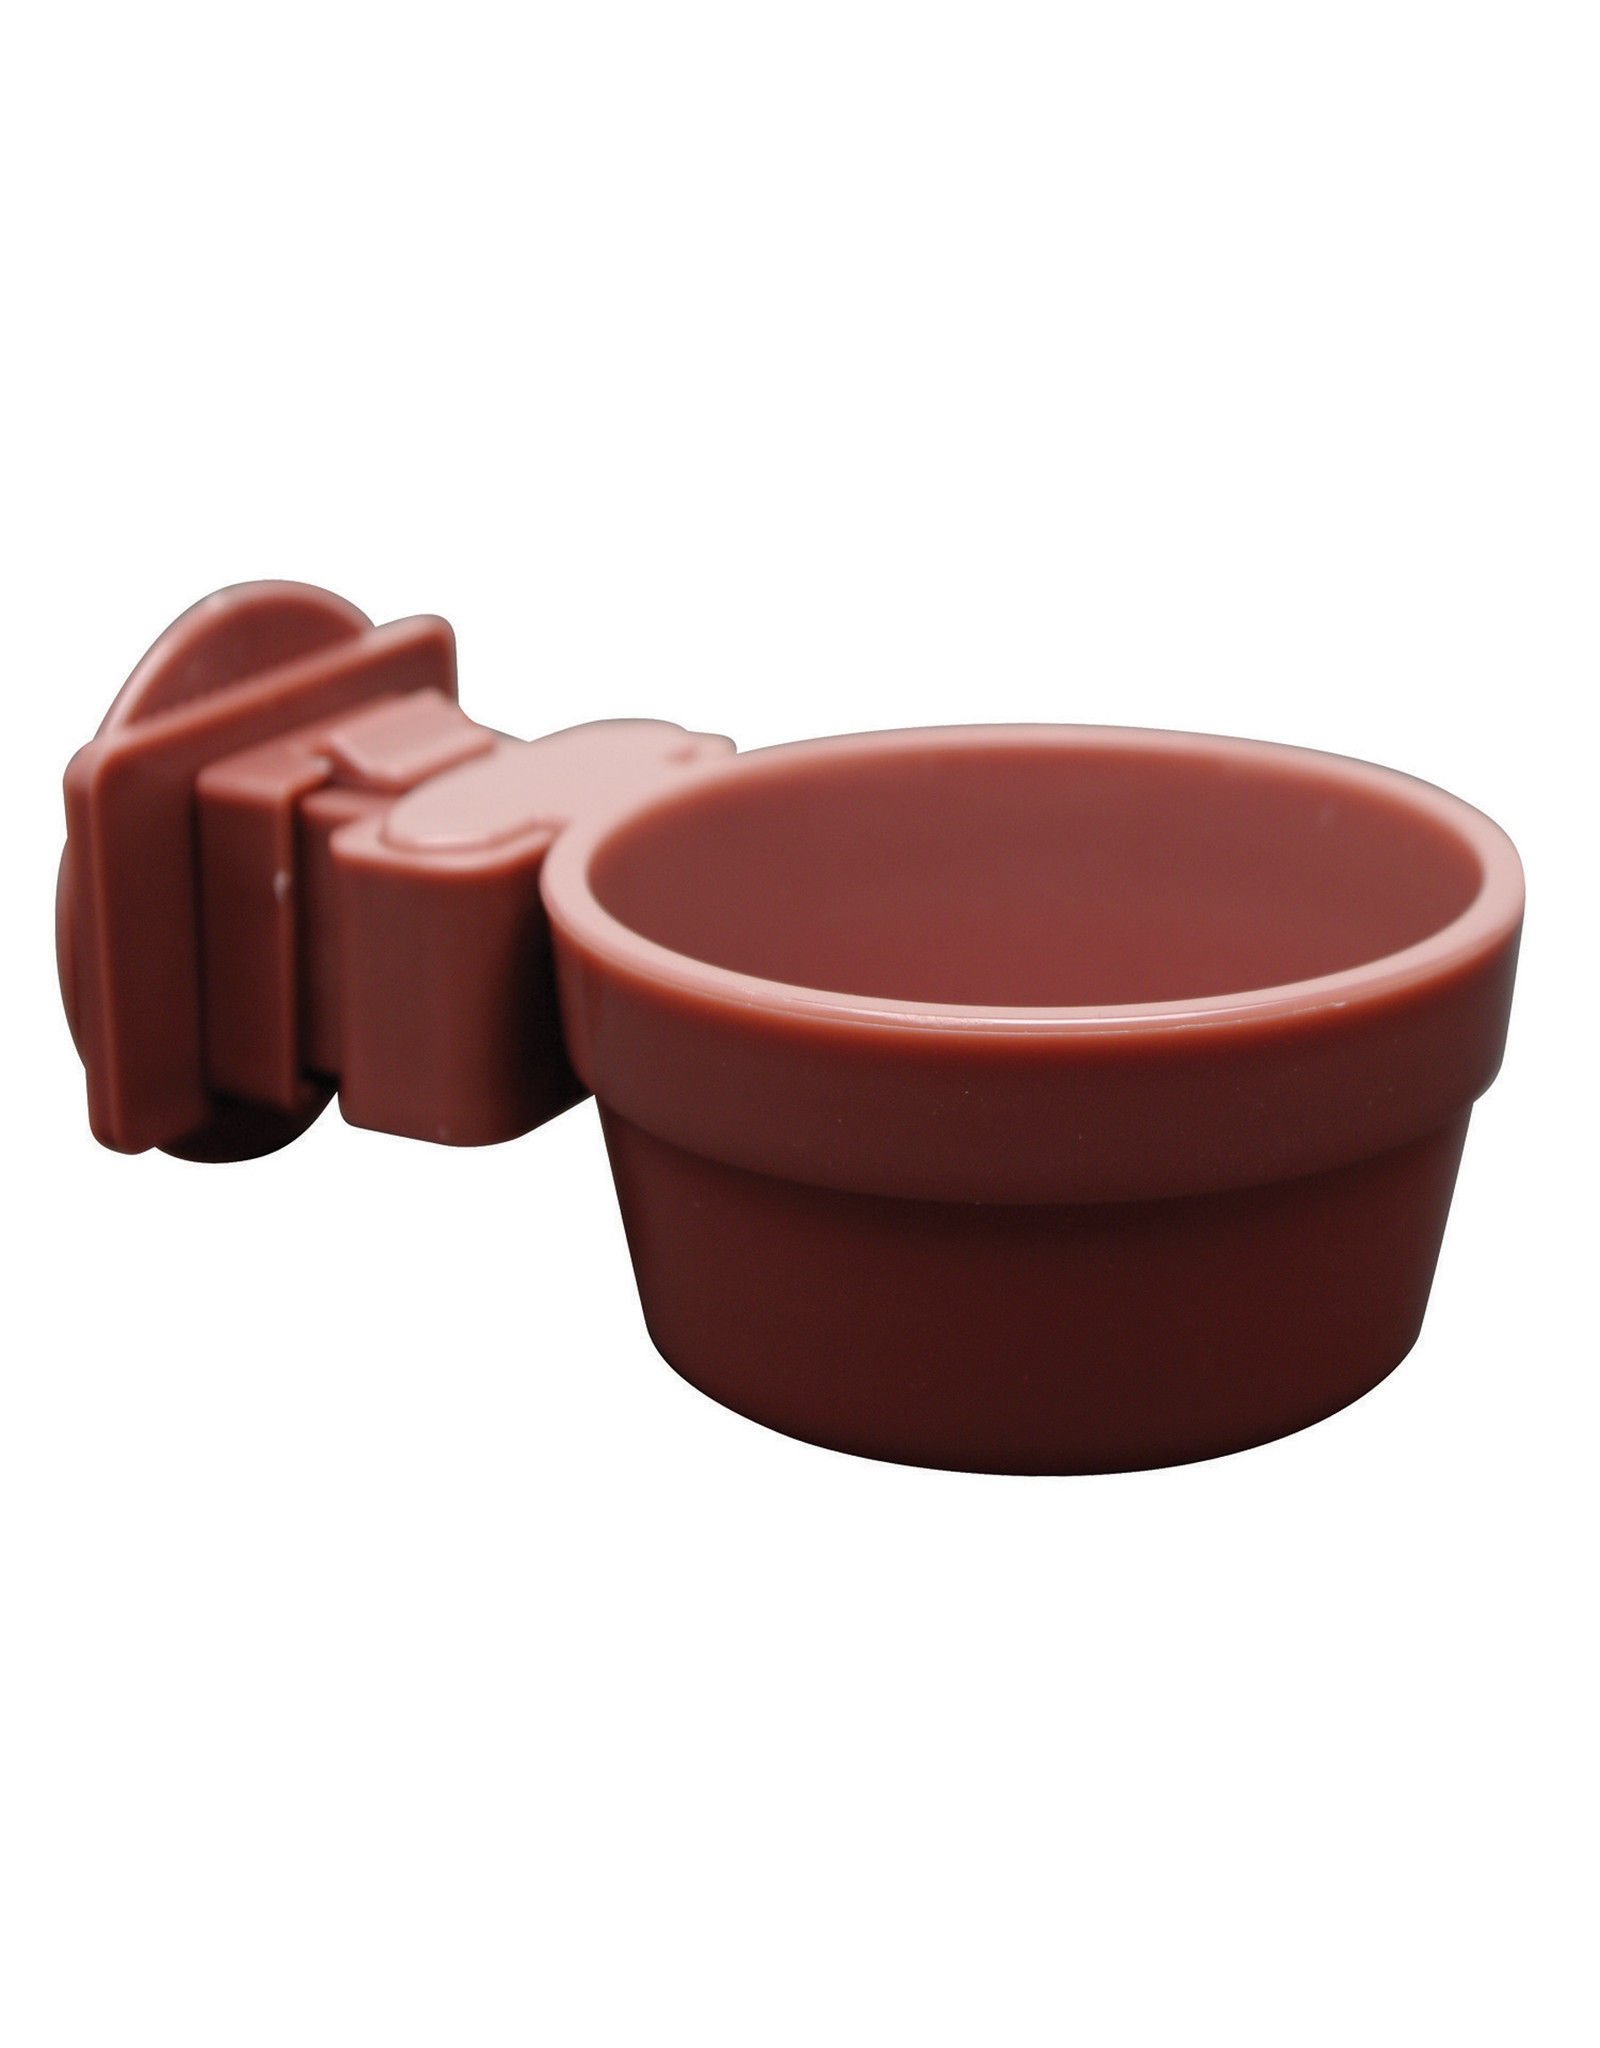 LW - Living World Living World Lock & Crock Dish